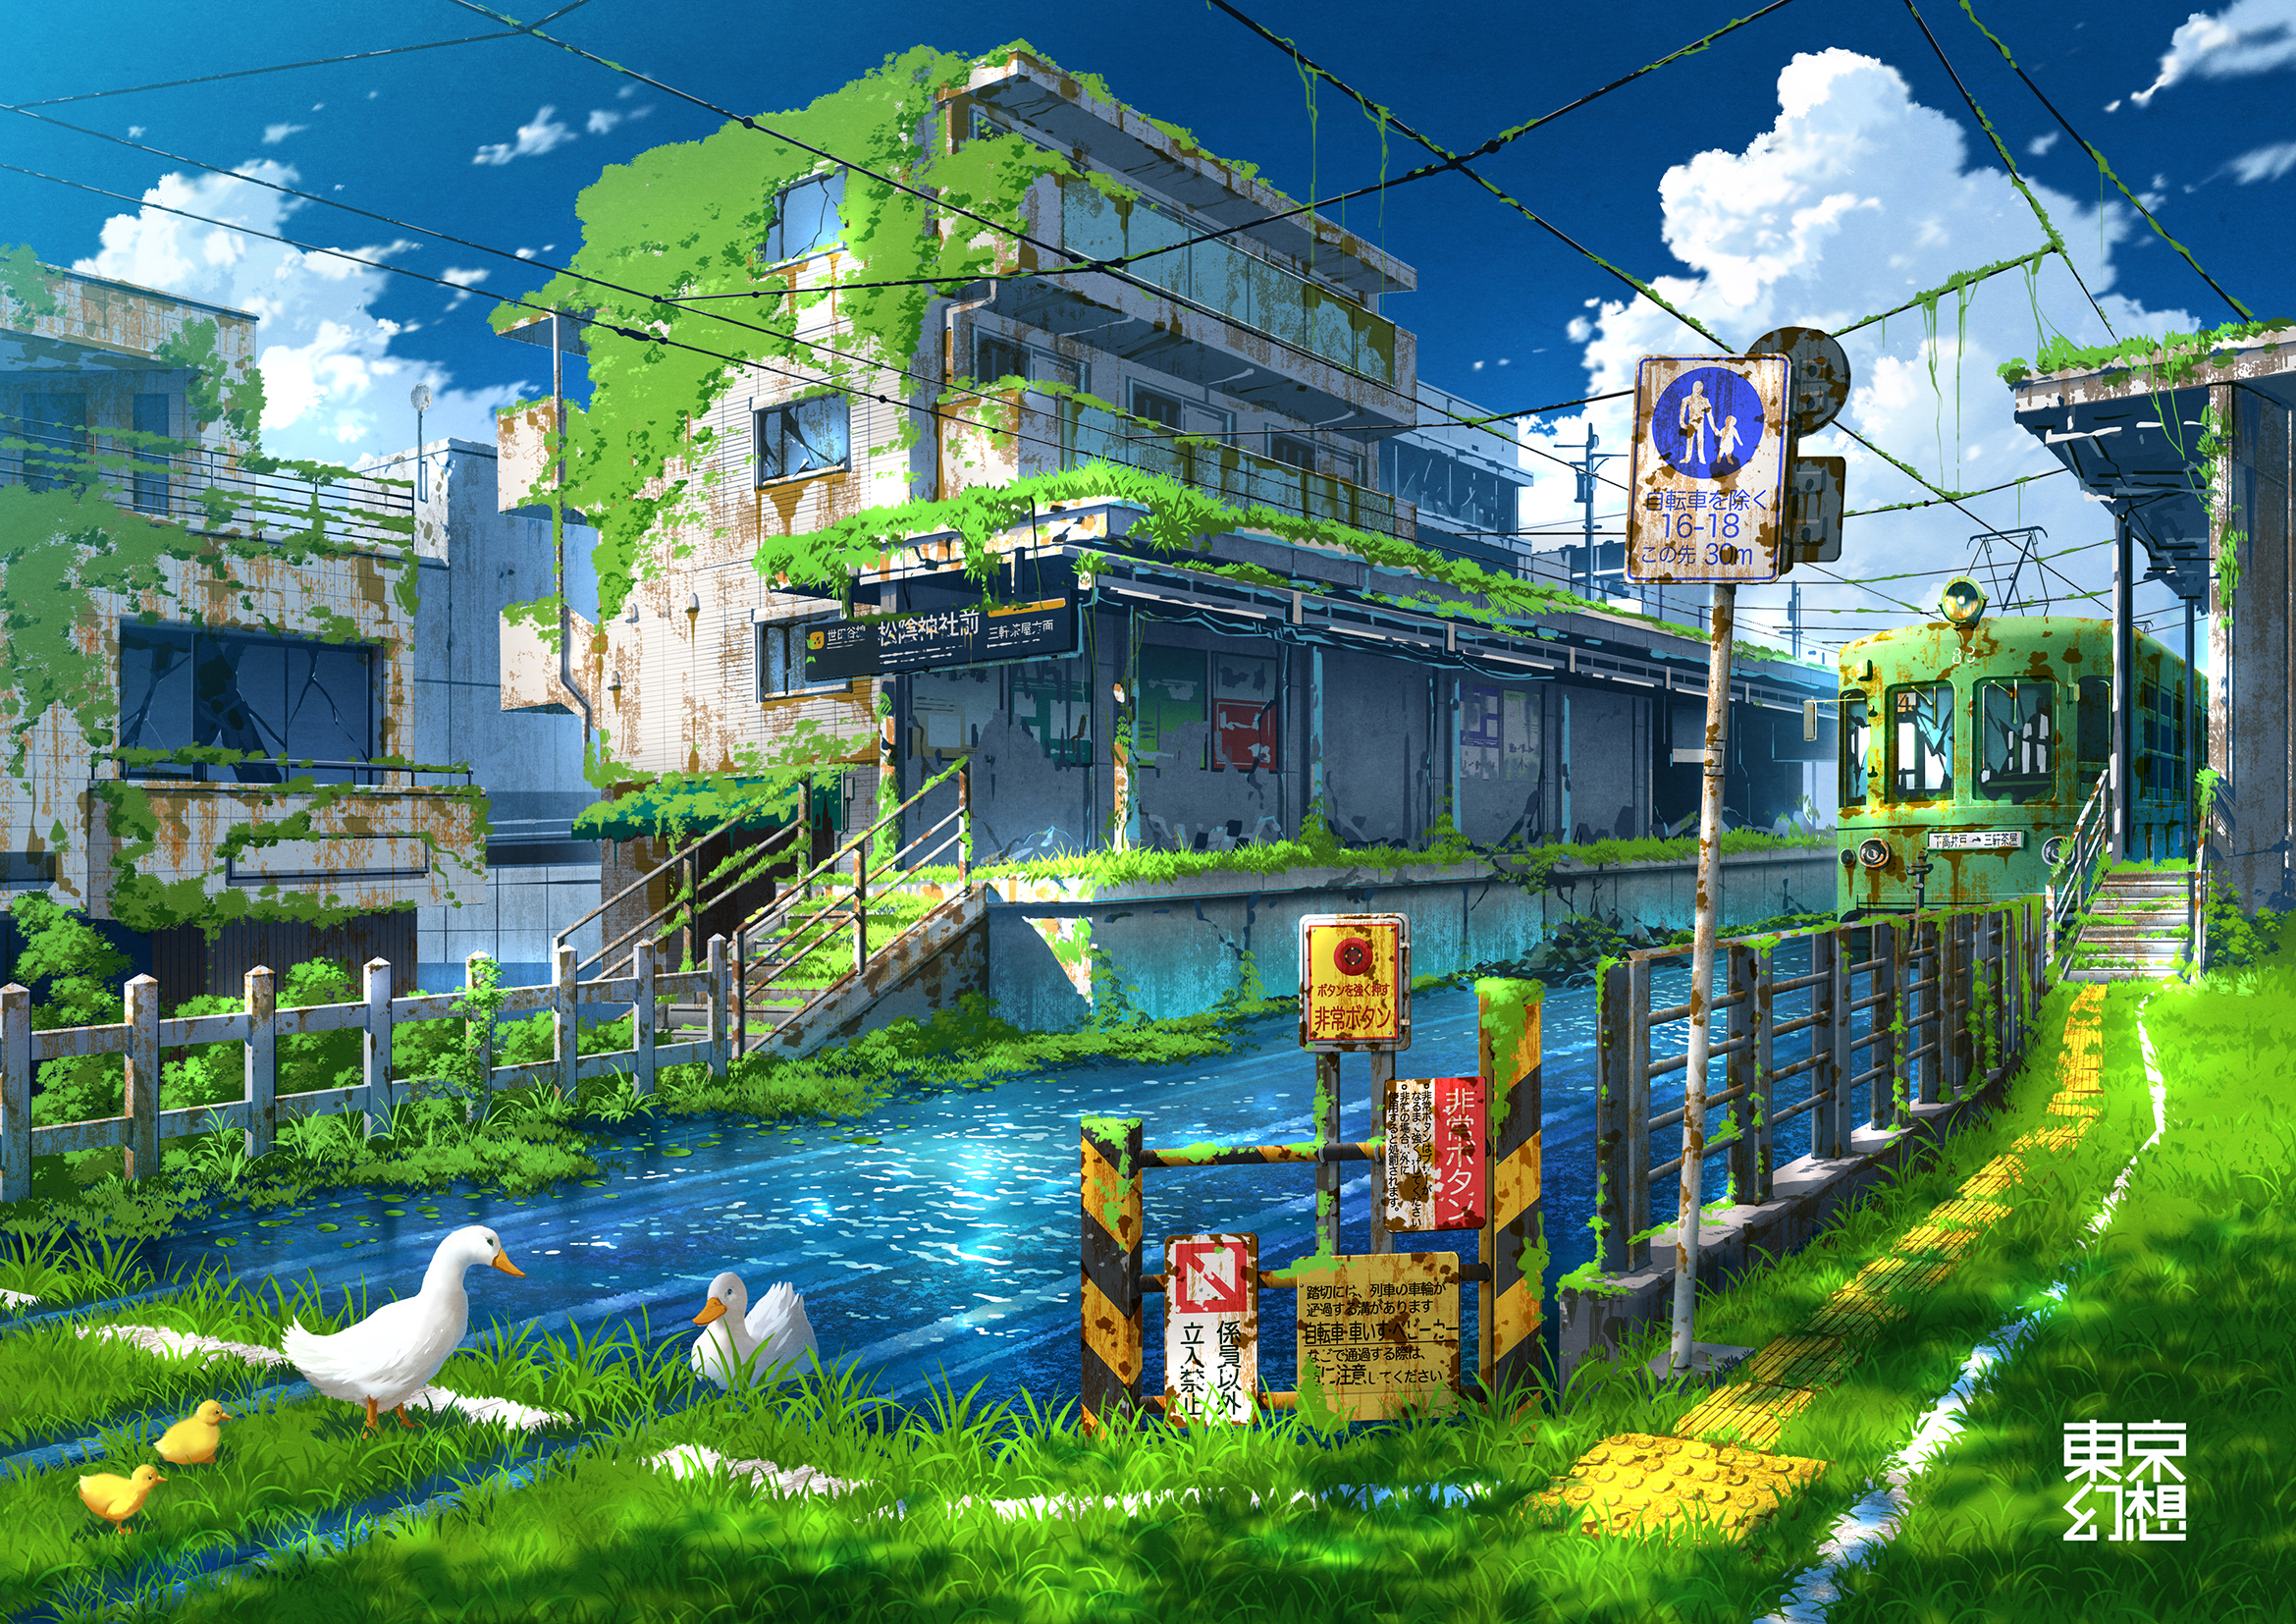 Anime 2339x1654 anime digital digital art artwork landscape sky anime sky animals architecture modern building water train train station clouds skyscape nature plants grass apocalyptic ruin ruins Sun sun rays colorful drawing digital painting sign urban fantasy art outdoors duck old building